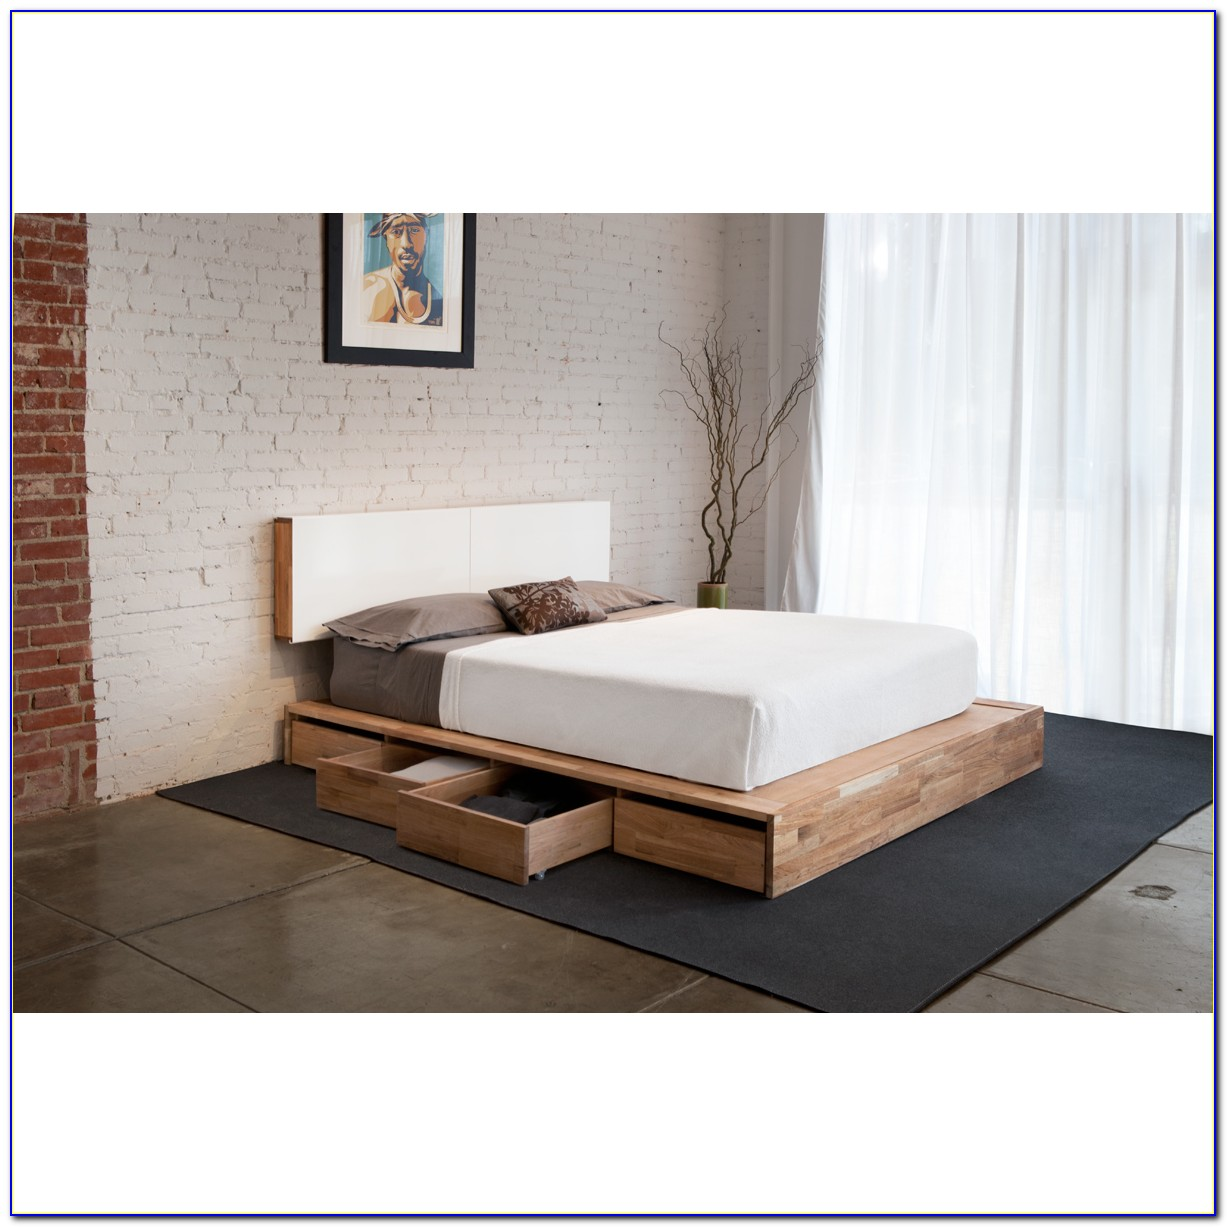 Bunk Beds With Headboard Storage